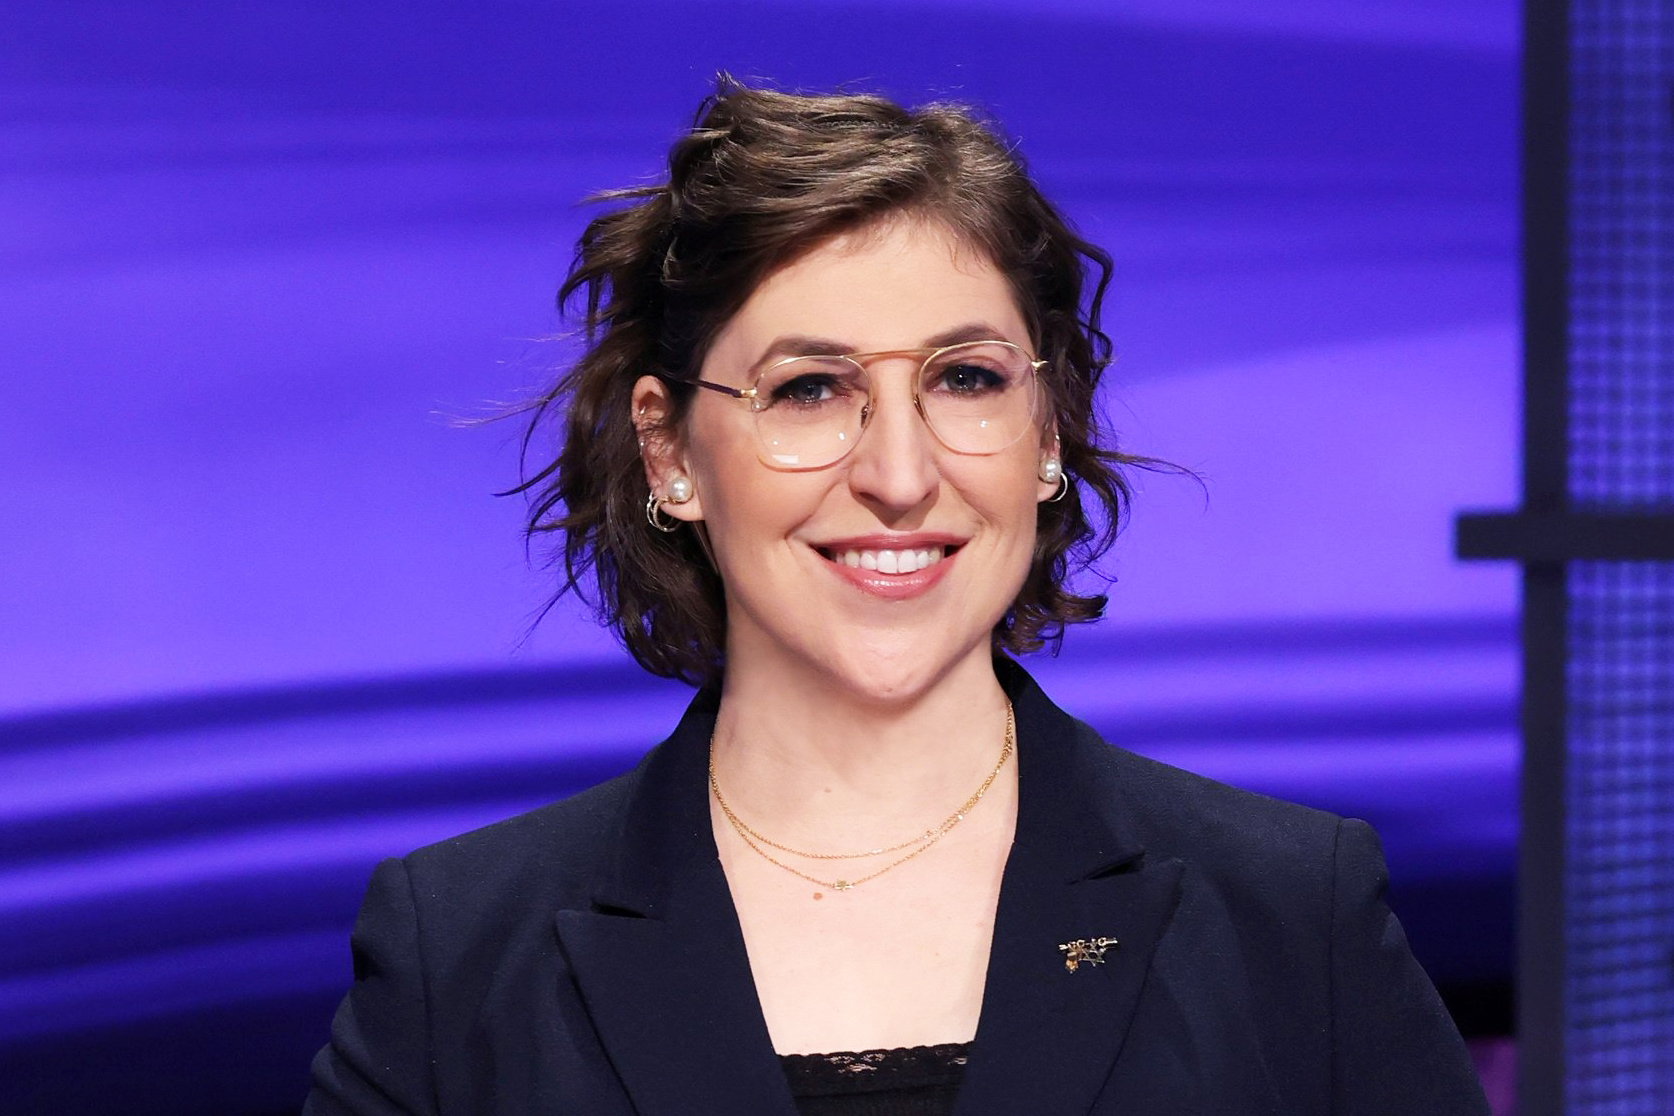 Mayim Bialik and Ken Jennings to host 'Jeopardy!' through the end of the year